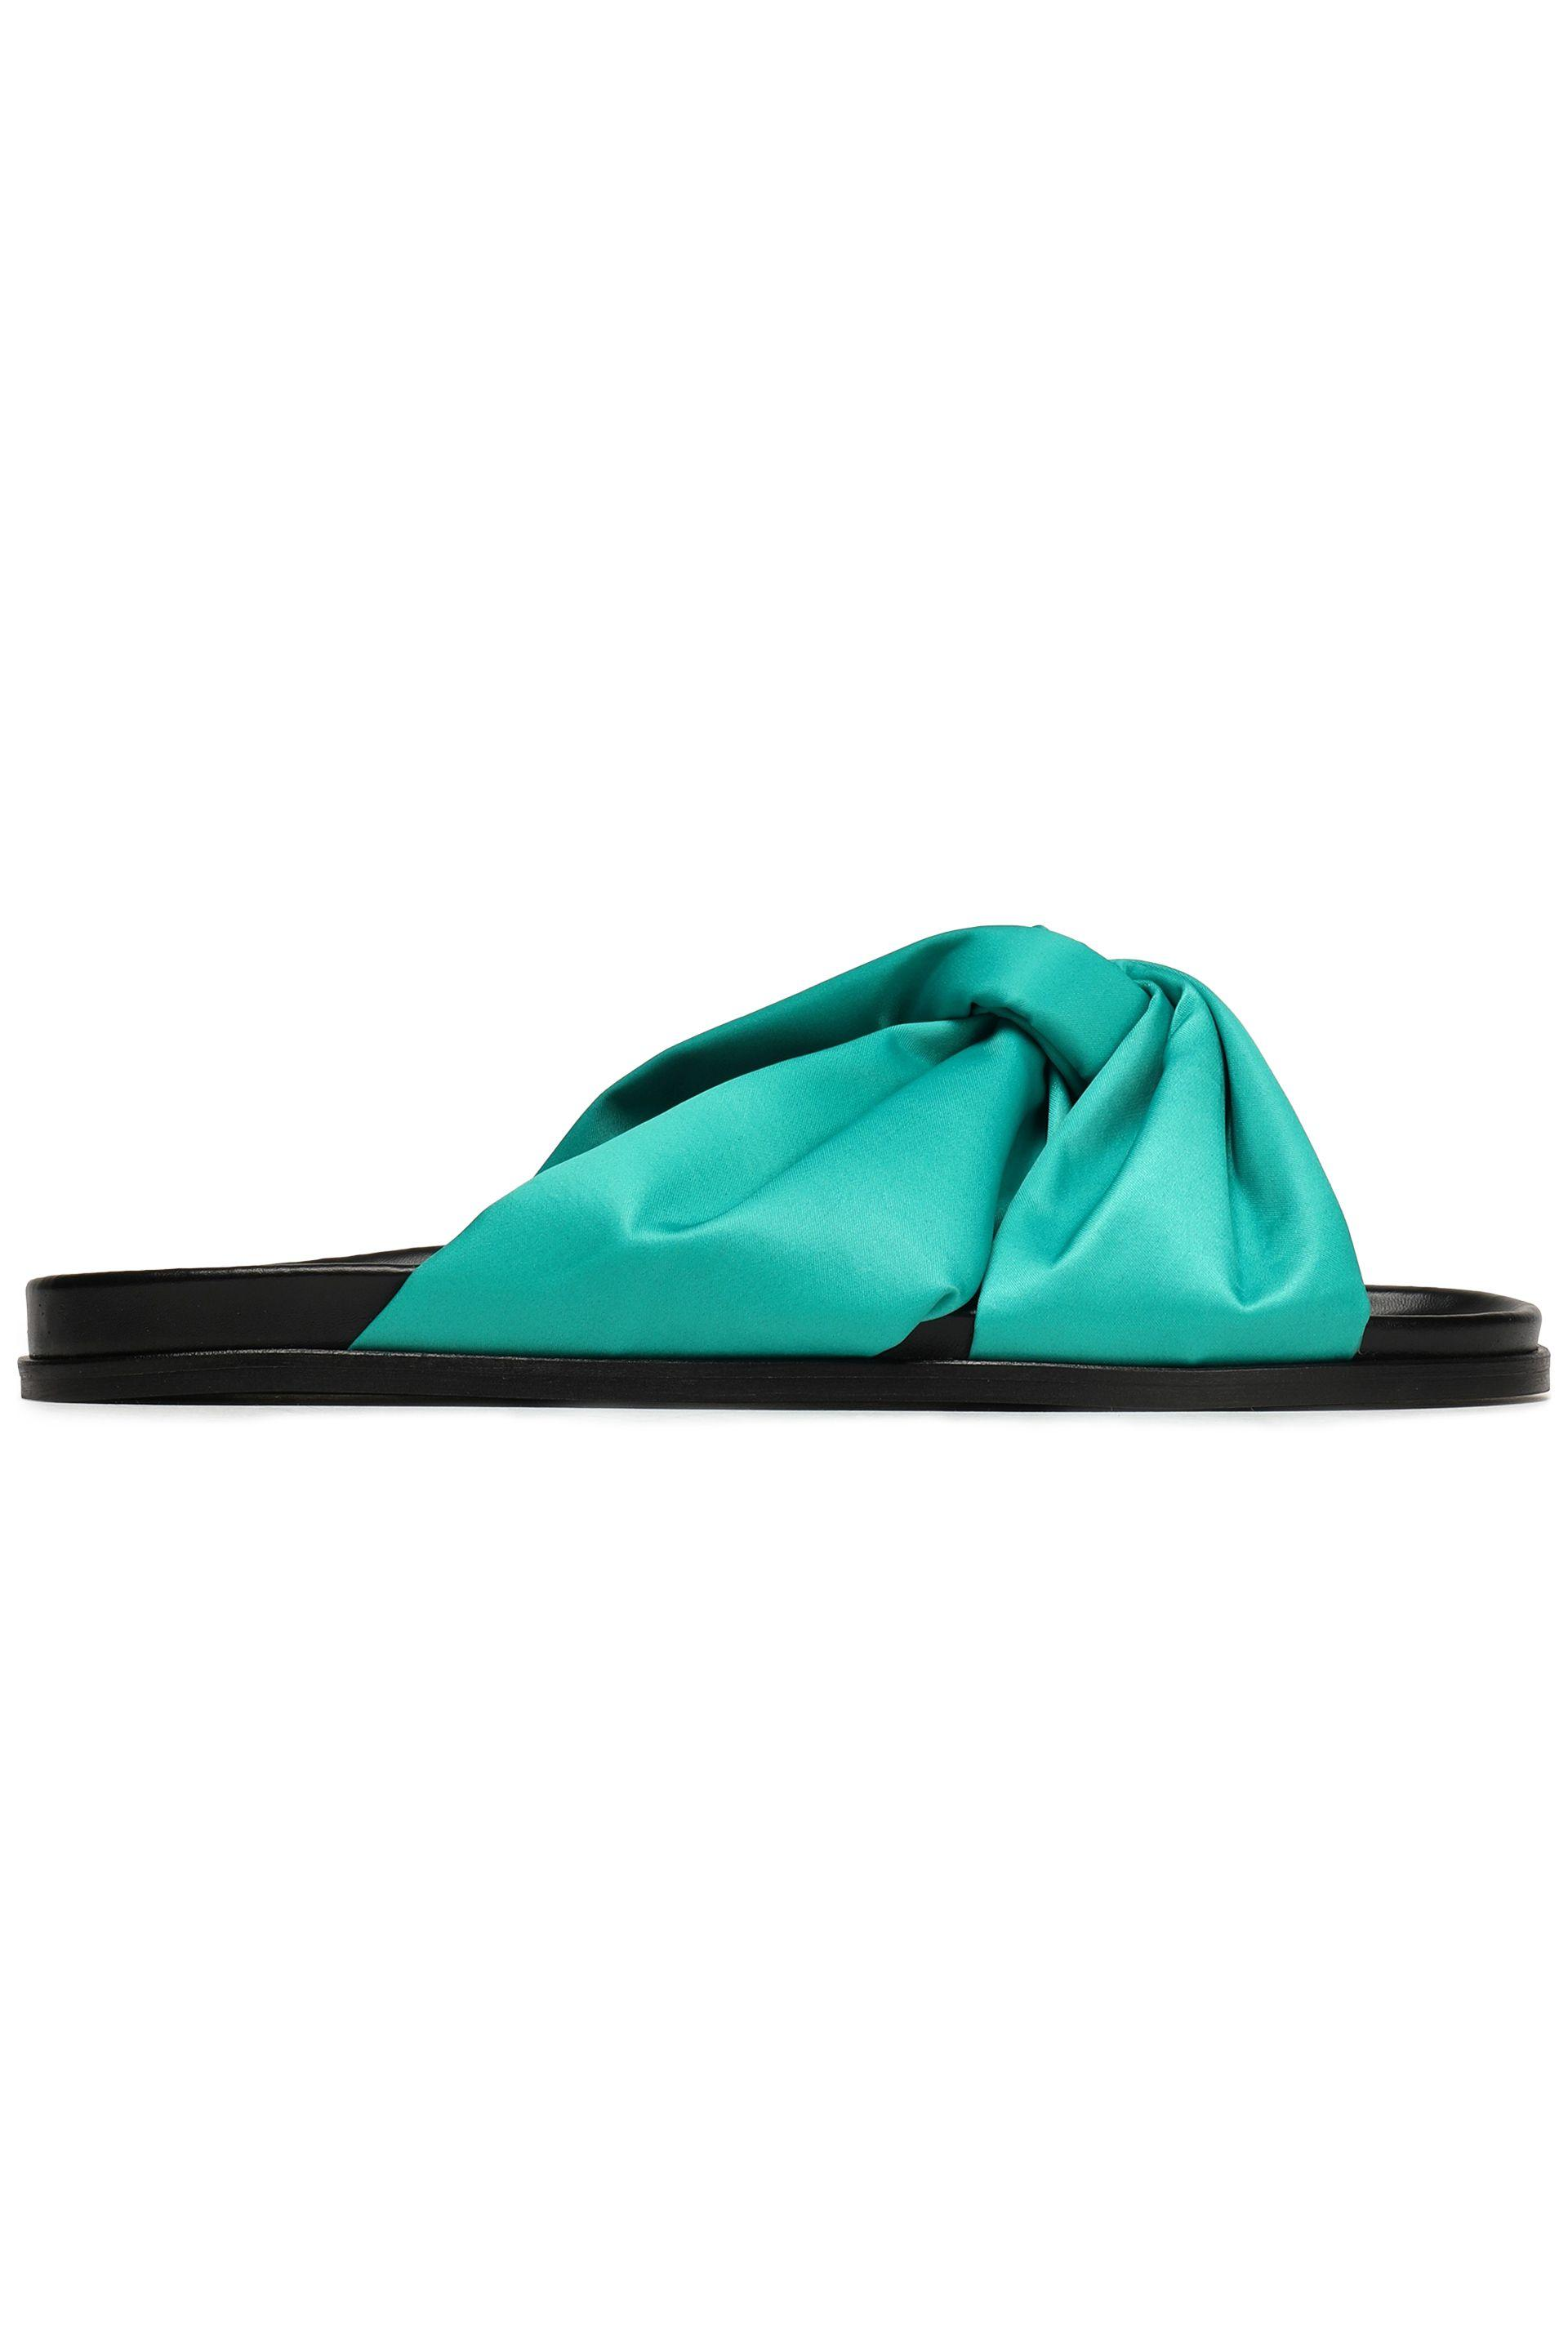 edc45f62fd0e Maje Woman Knotted Satin Slides Jade in Green - Lyst